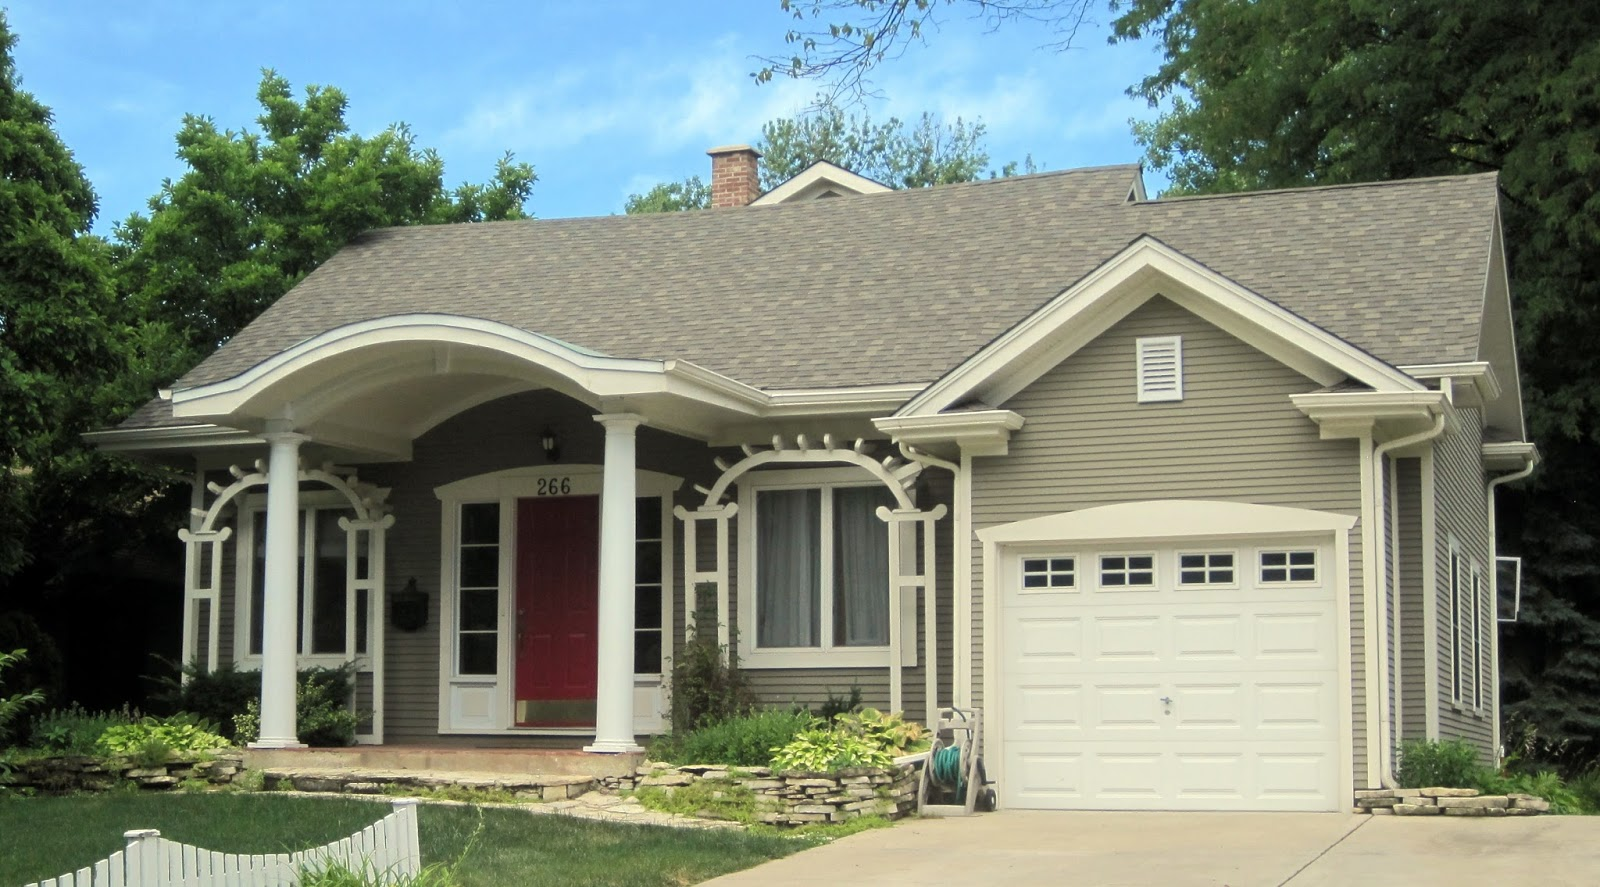 Sears House Garage Addition: Sears Homes Of Chicagoland